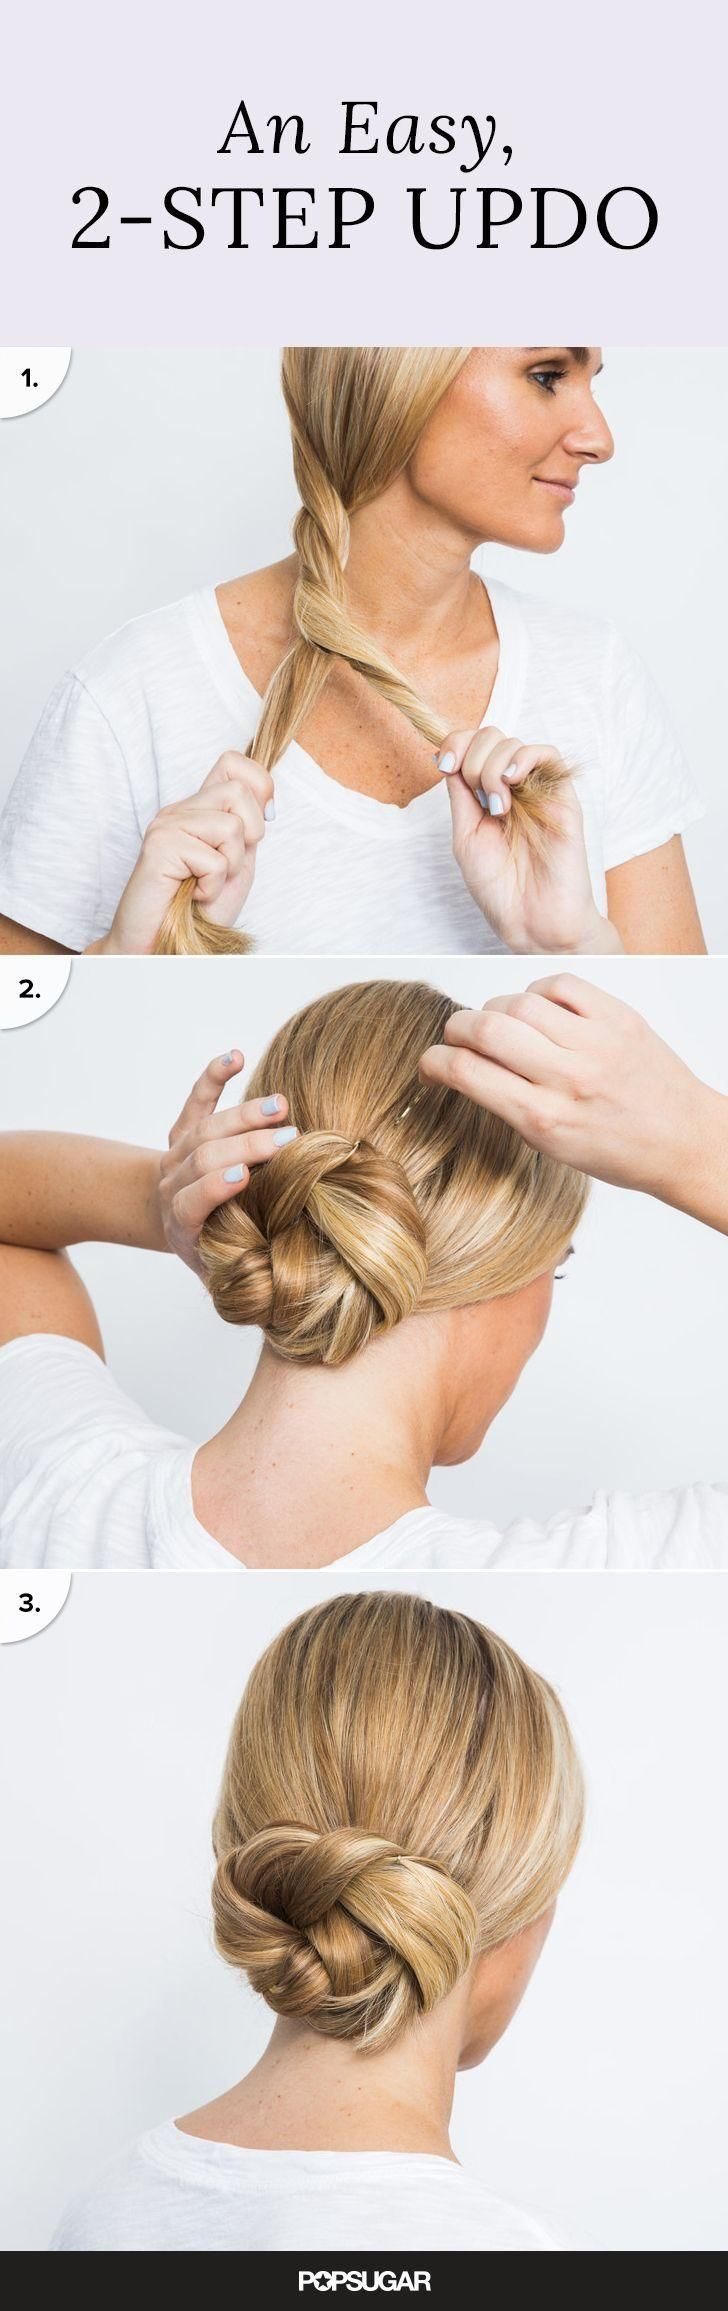 25+ best ideas about Job interview hairstyles on Pinterest ...